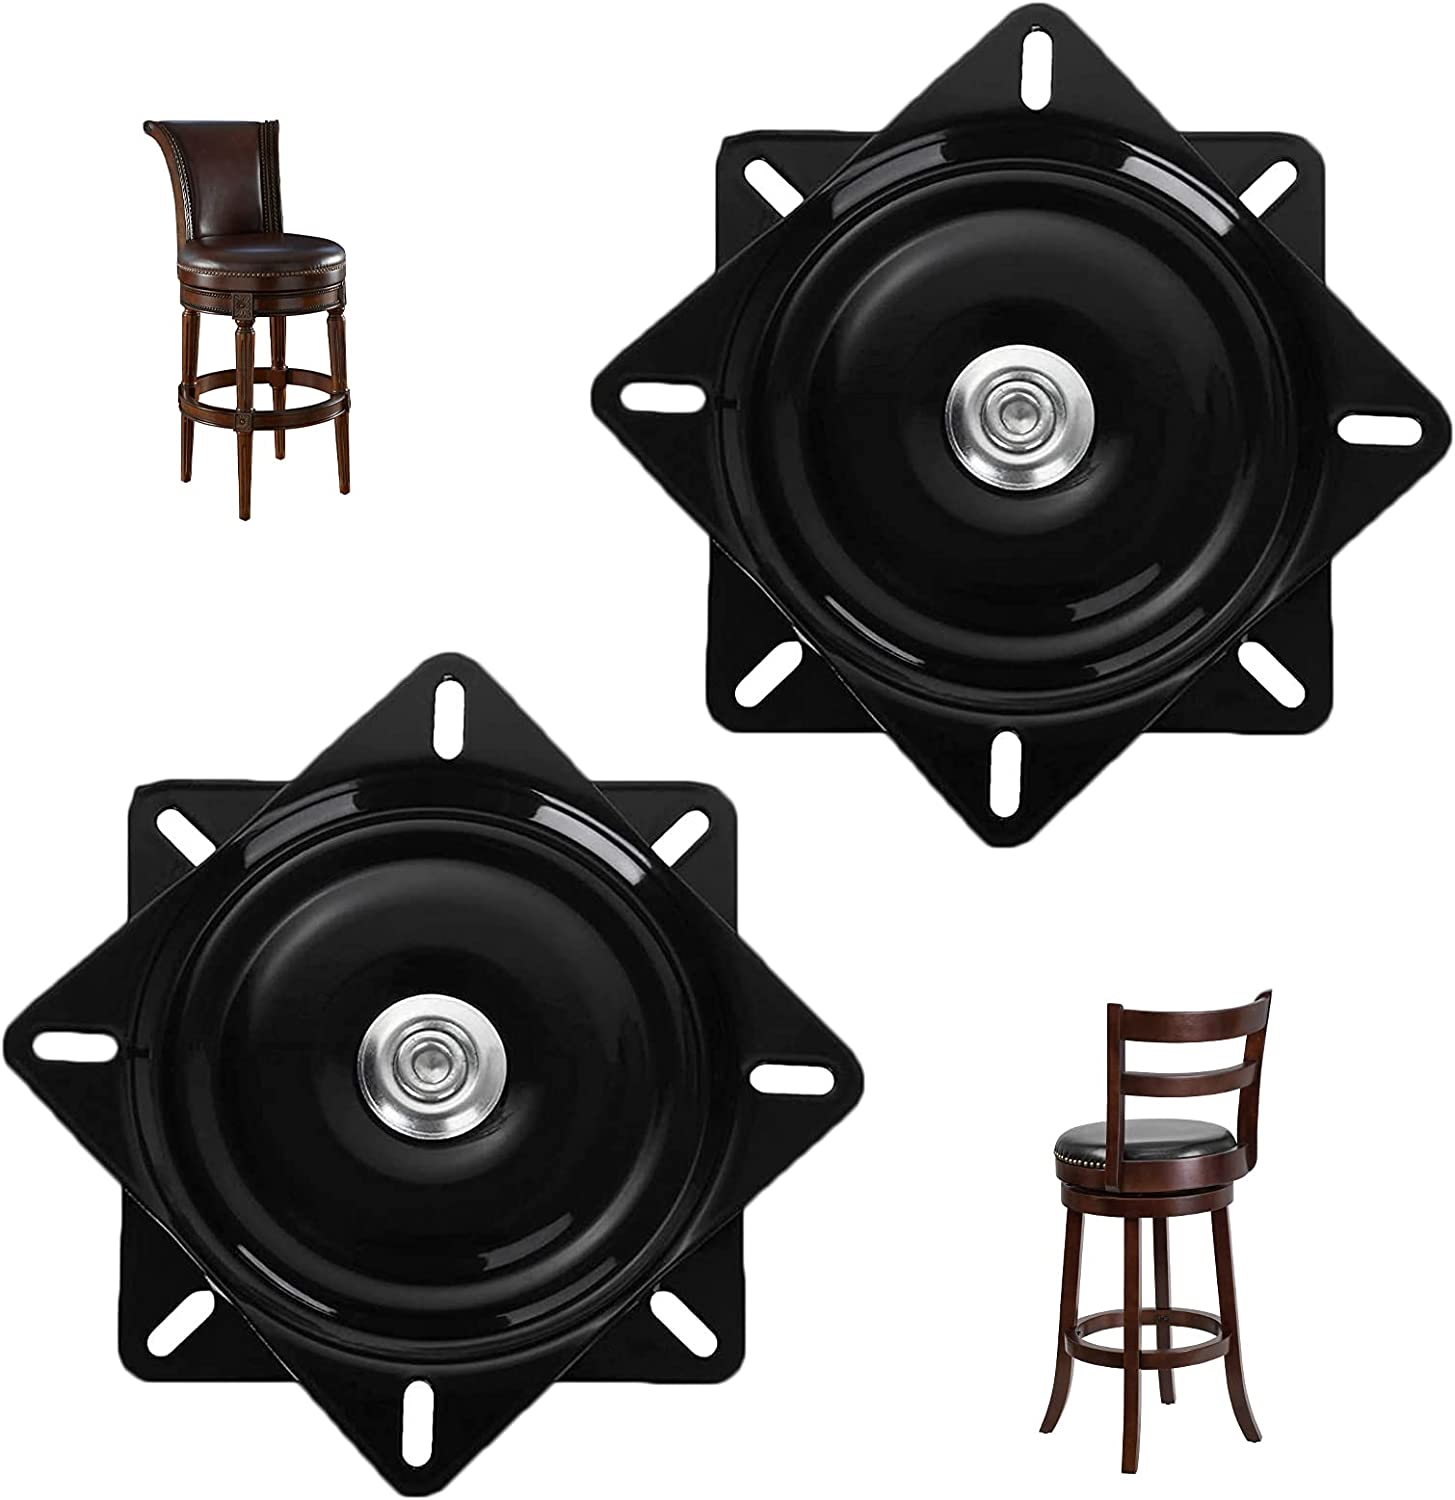 2 Pack 6 Inch Fort Worth Mall Heavy 35% OFF Duty Stool Reclin for Swivel Bar Replacement